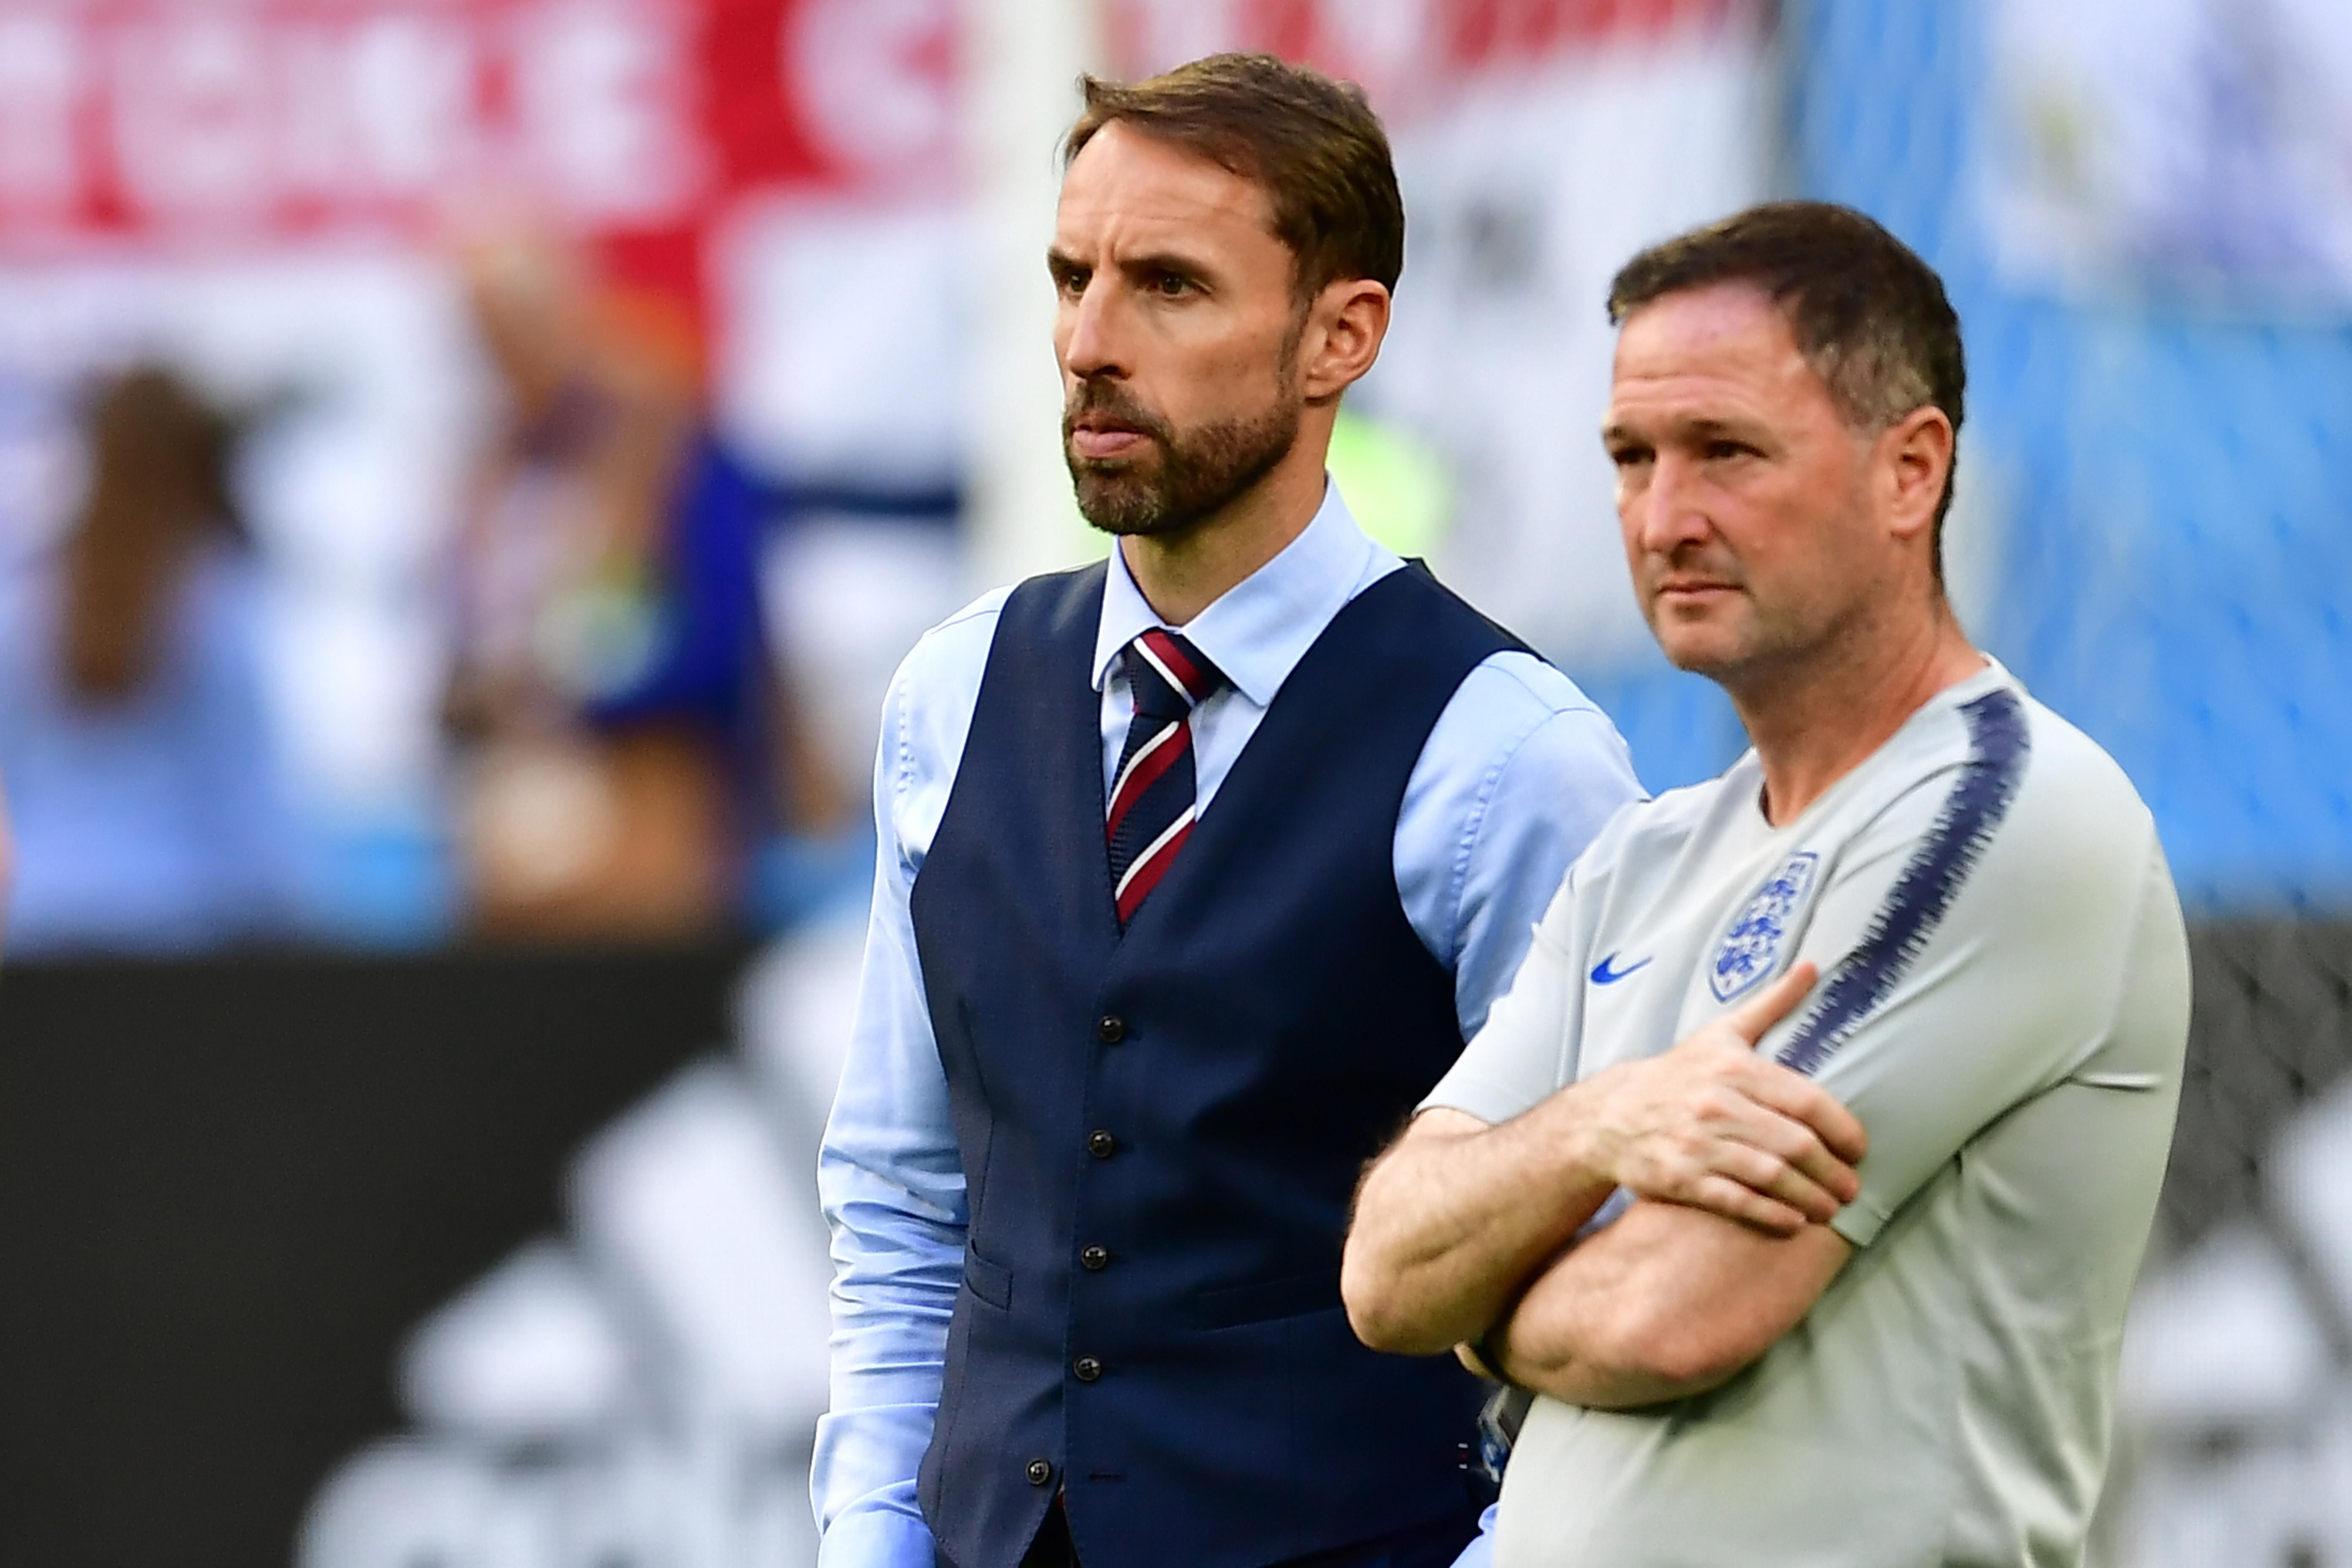 England's coach Gareth Southgate, wearing a vest, and an assistant react to Belgium's victory.